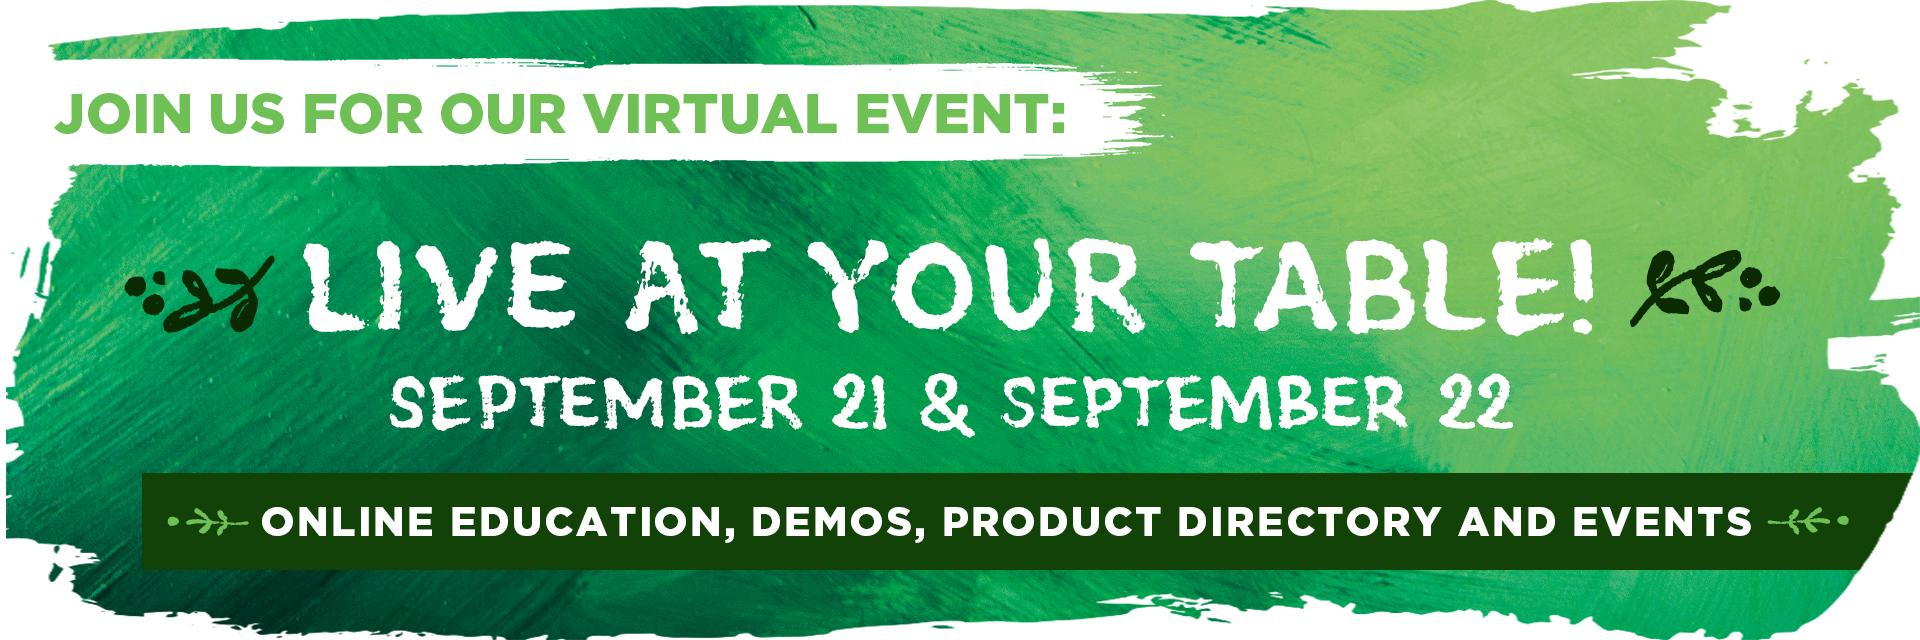 Live At Your Table Virtual Event